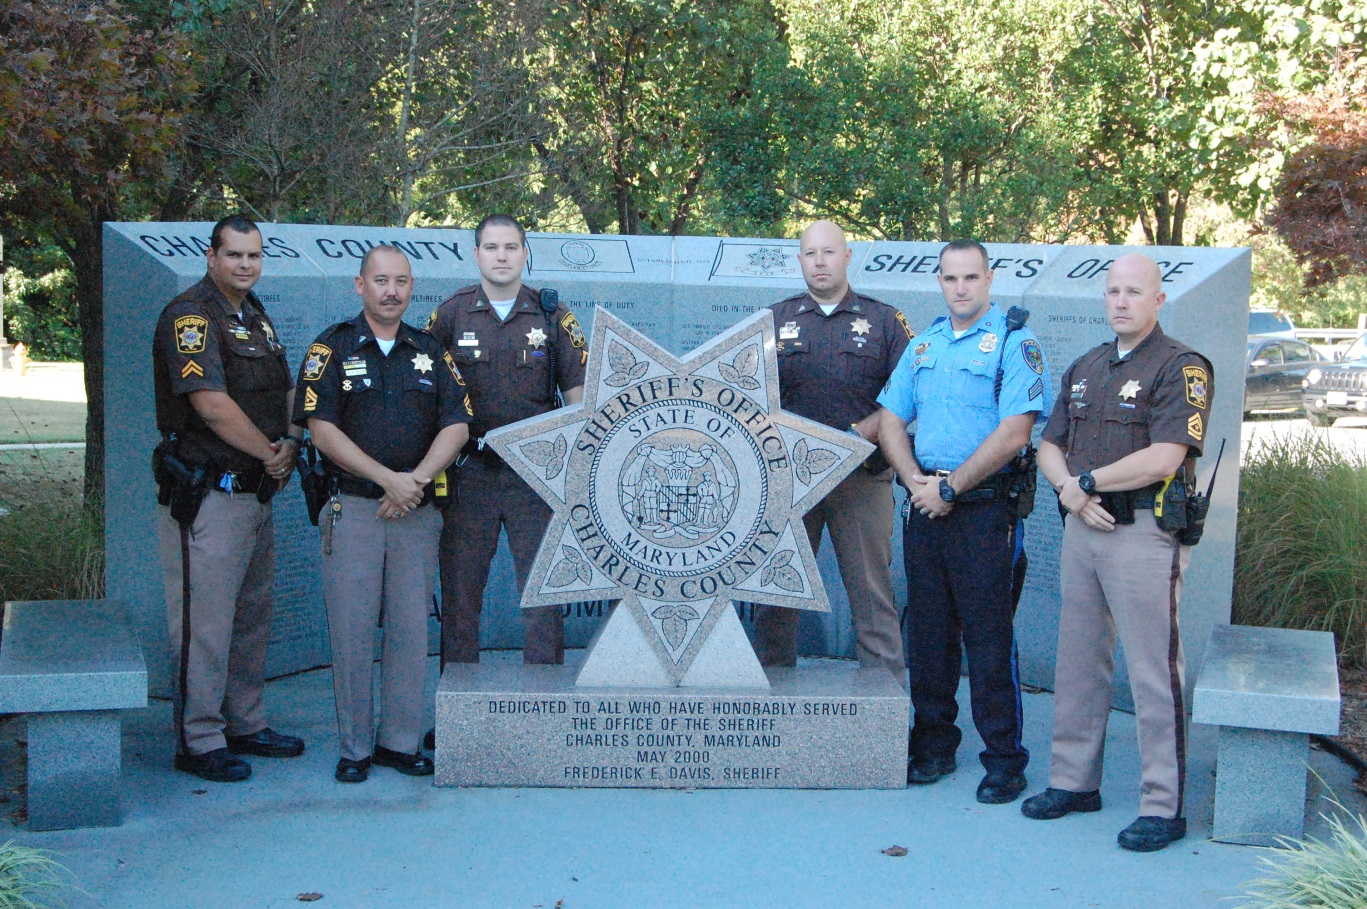 Drug Recognition Experts, from Left to Right: Cpl. Brad Saunders, M/Cpl. Charles McCue (DRE Instructor), Pfc. Matt Kelly, Pfc. Ray Brooks, Cpl. Matt Norris (La Plata Police Department) and M/Cpl. Jason Hopkins